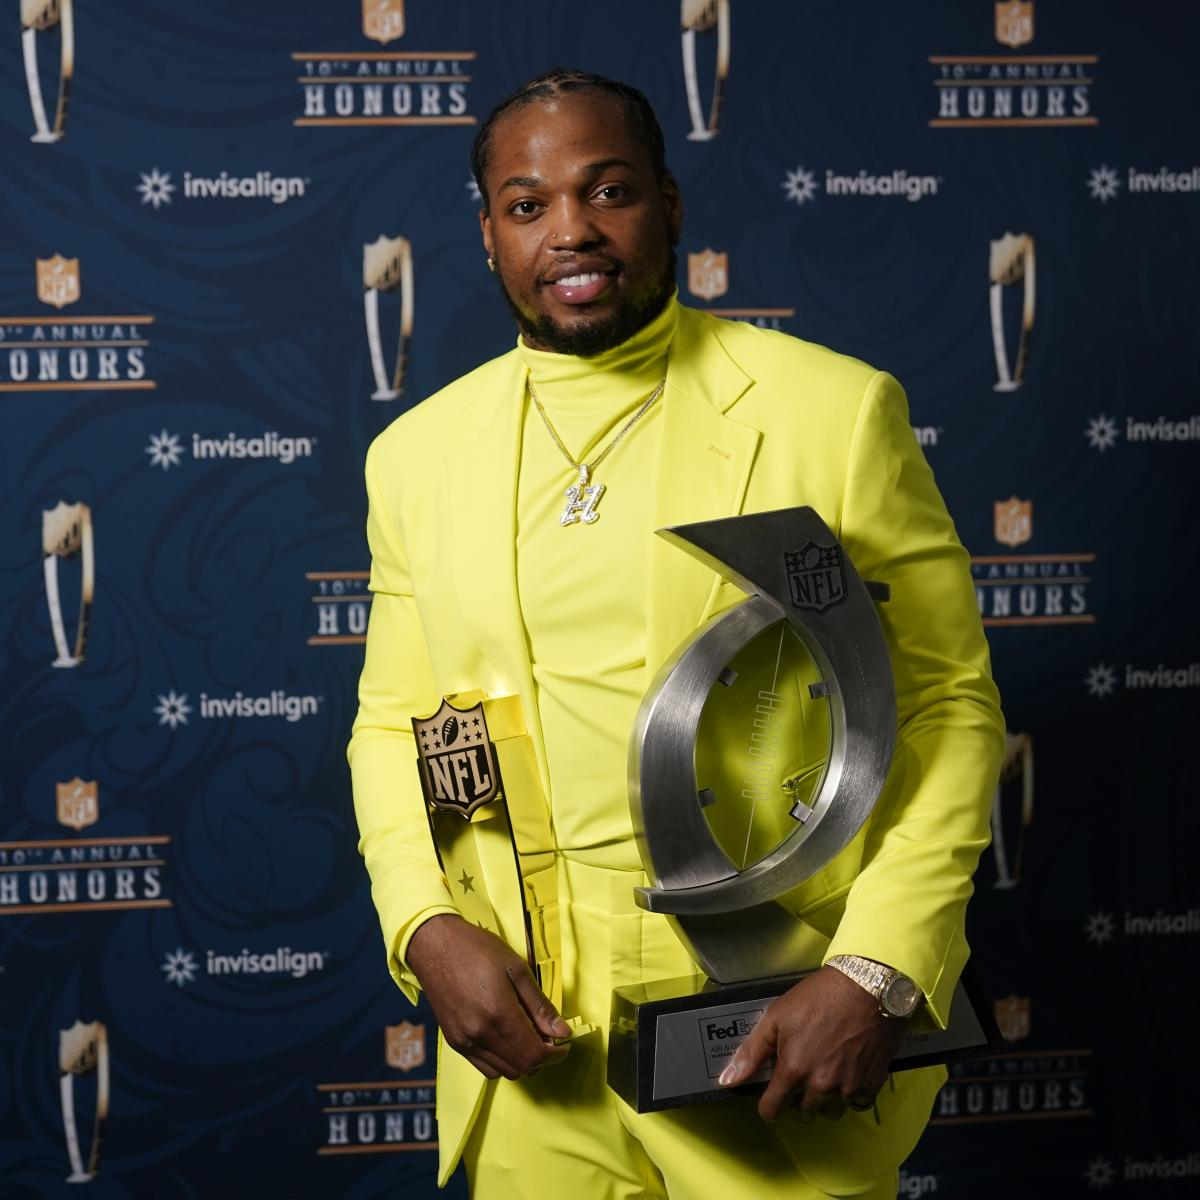 NFL Honors 2021: Award Winners, Voting Results and Twitter Reaction